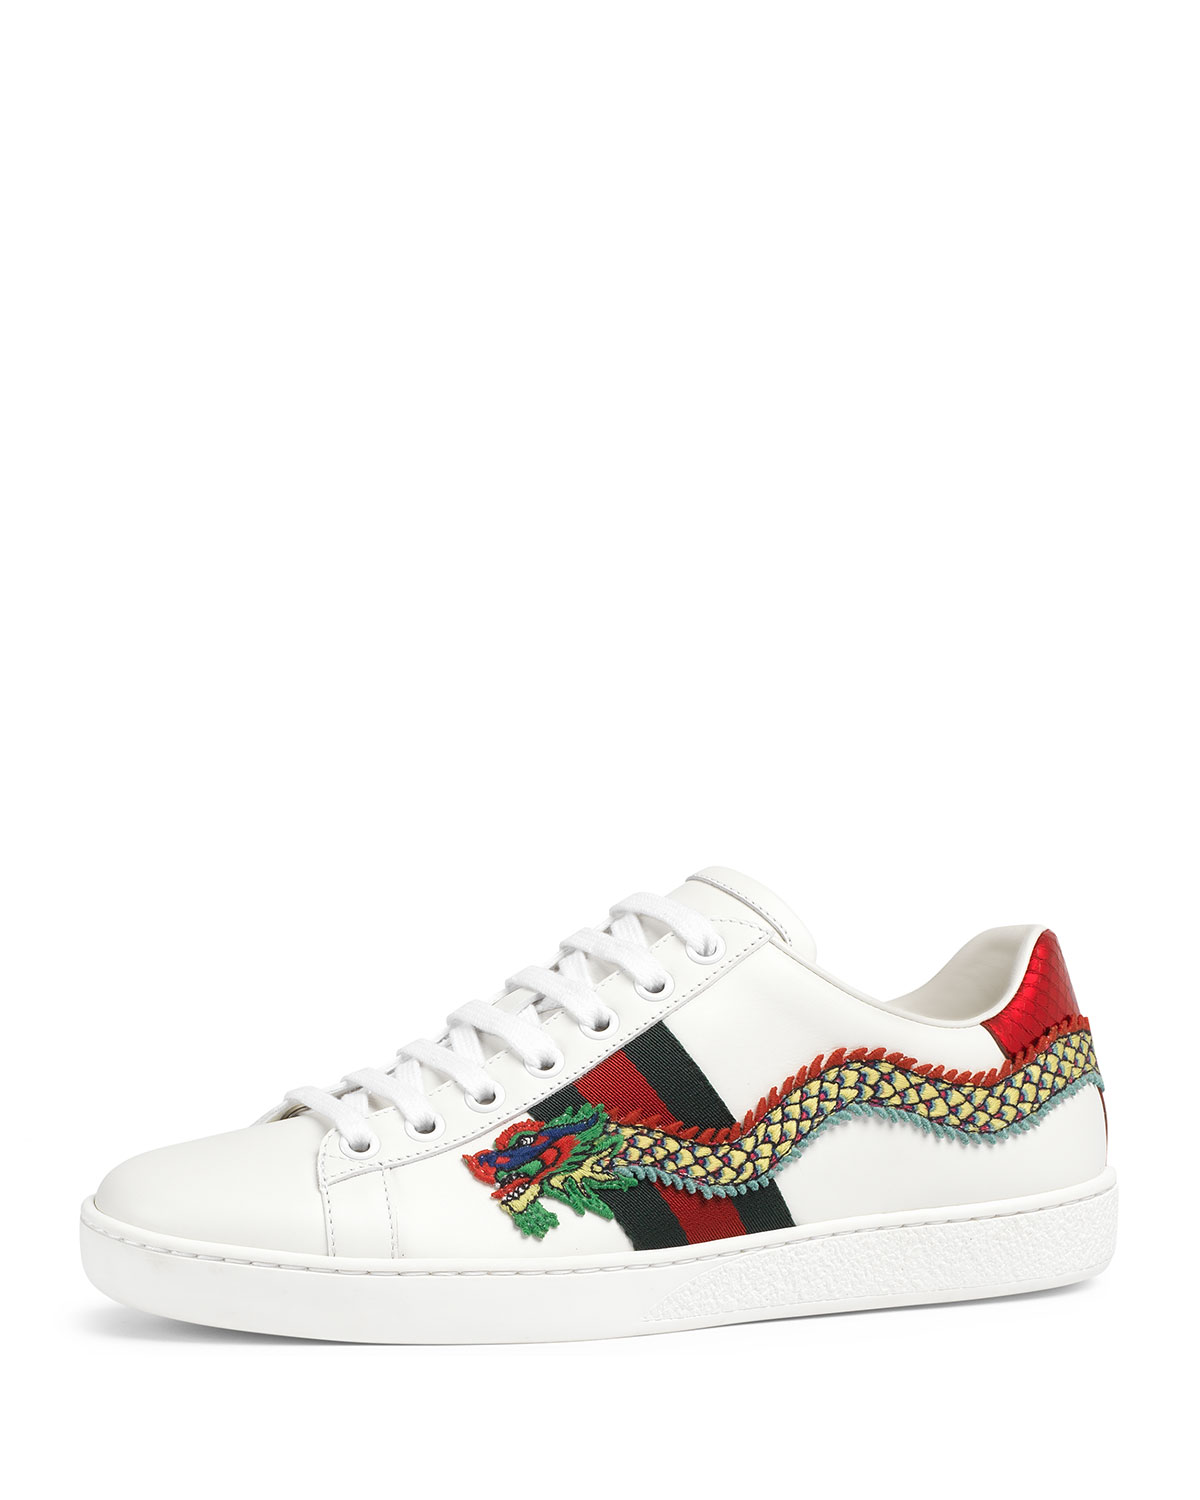 fbf28369942 Gucci New Ace Dragon Sneaker